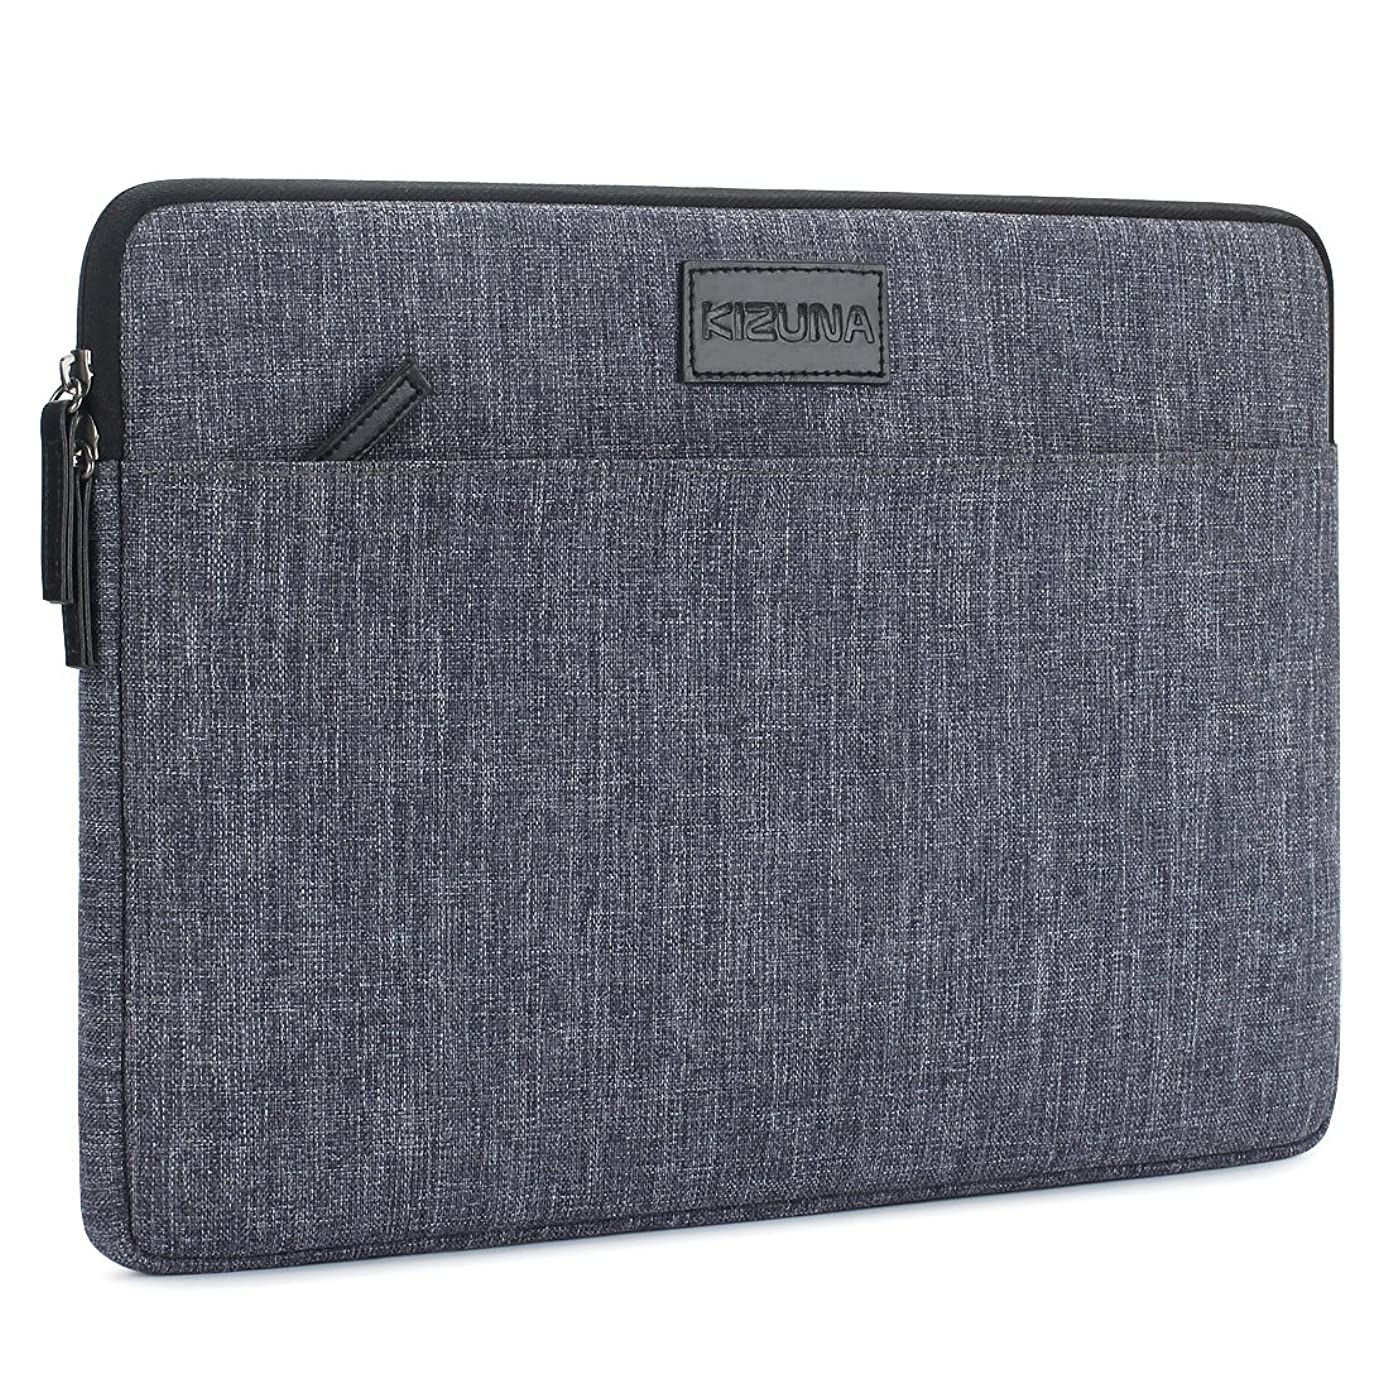 KIZUNA Laptop Sleeve 12.5 Inch Water-Resistant Shockproof Notebook Case Carrying Bag Compatible with 13